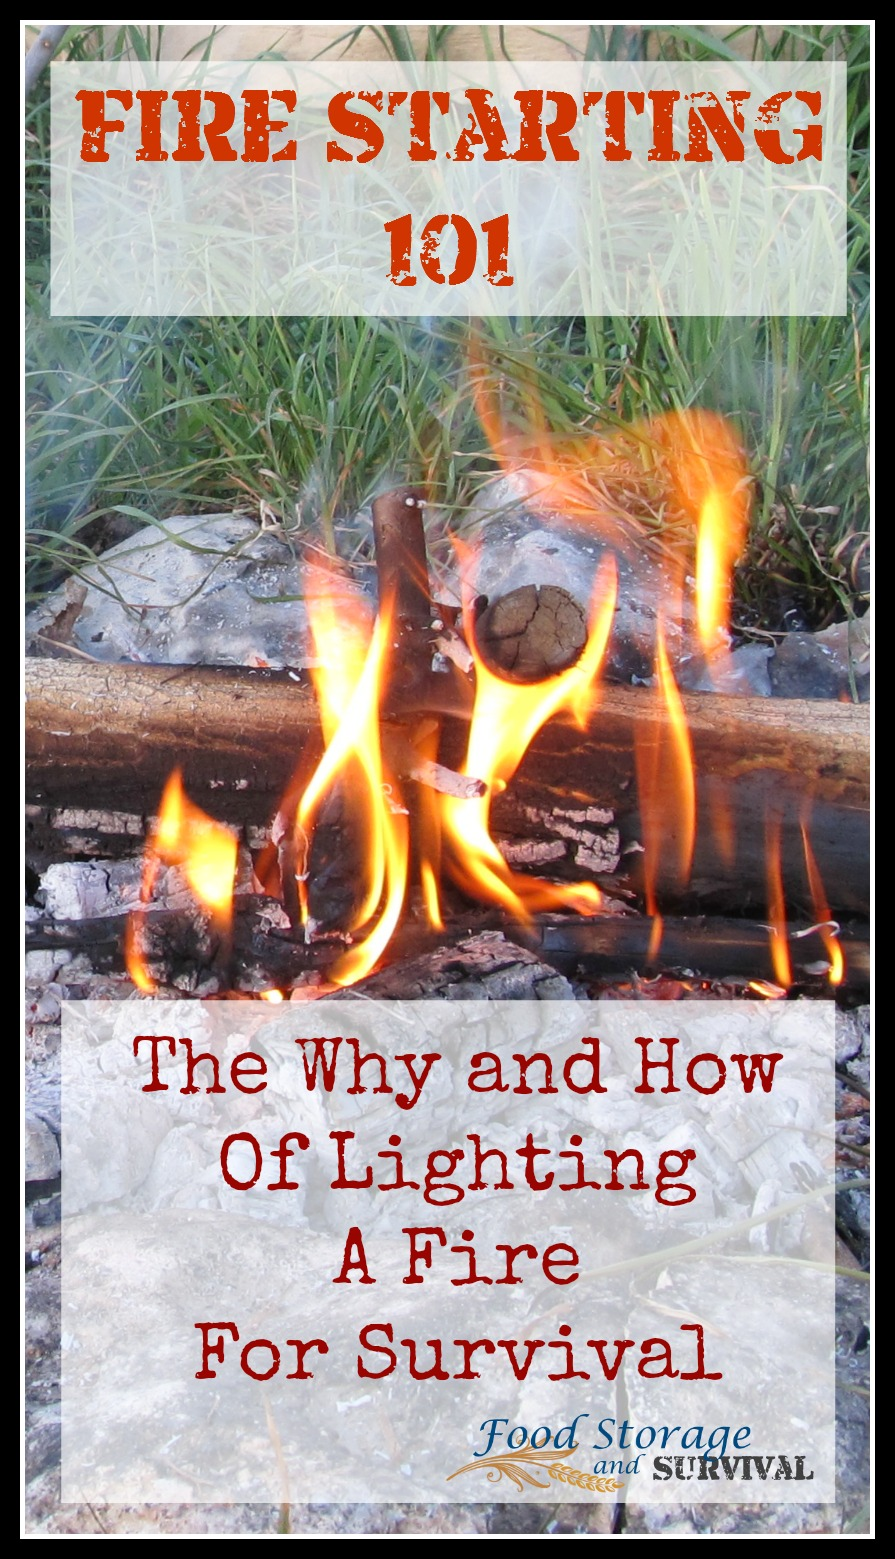 Fire Starting 101: The Why and How of Lighting a Fire for Survival